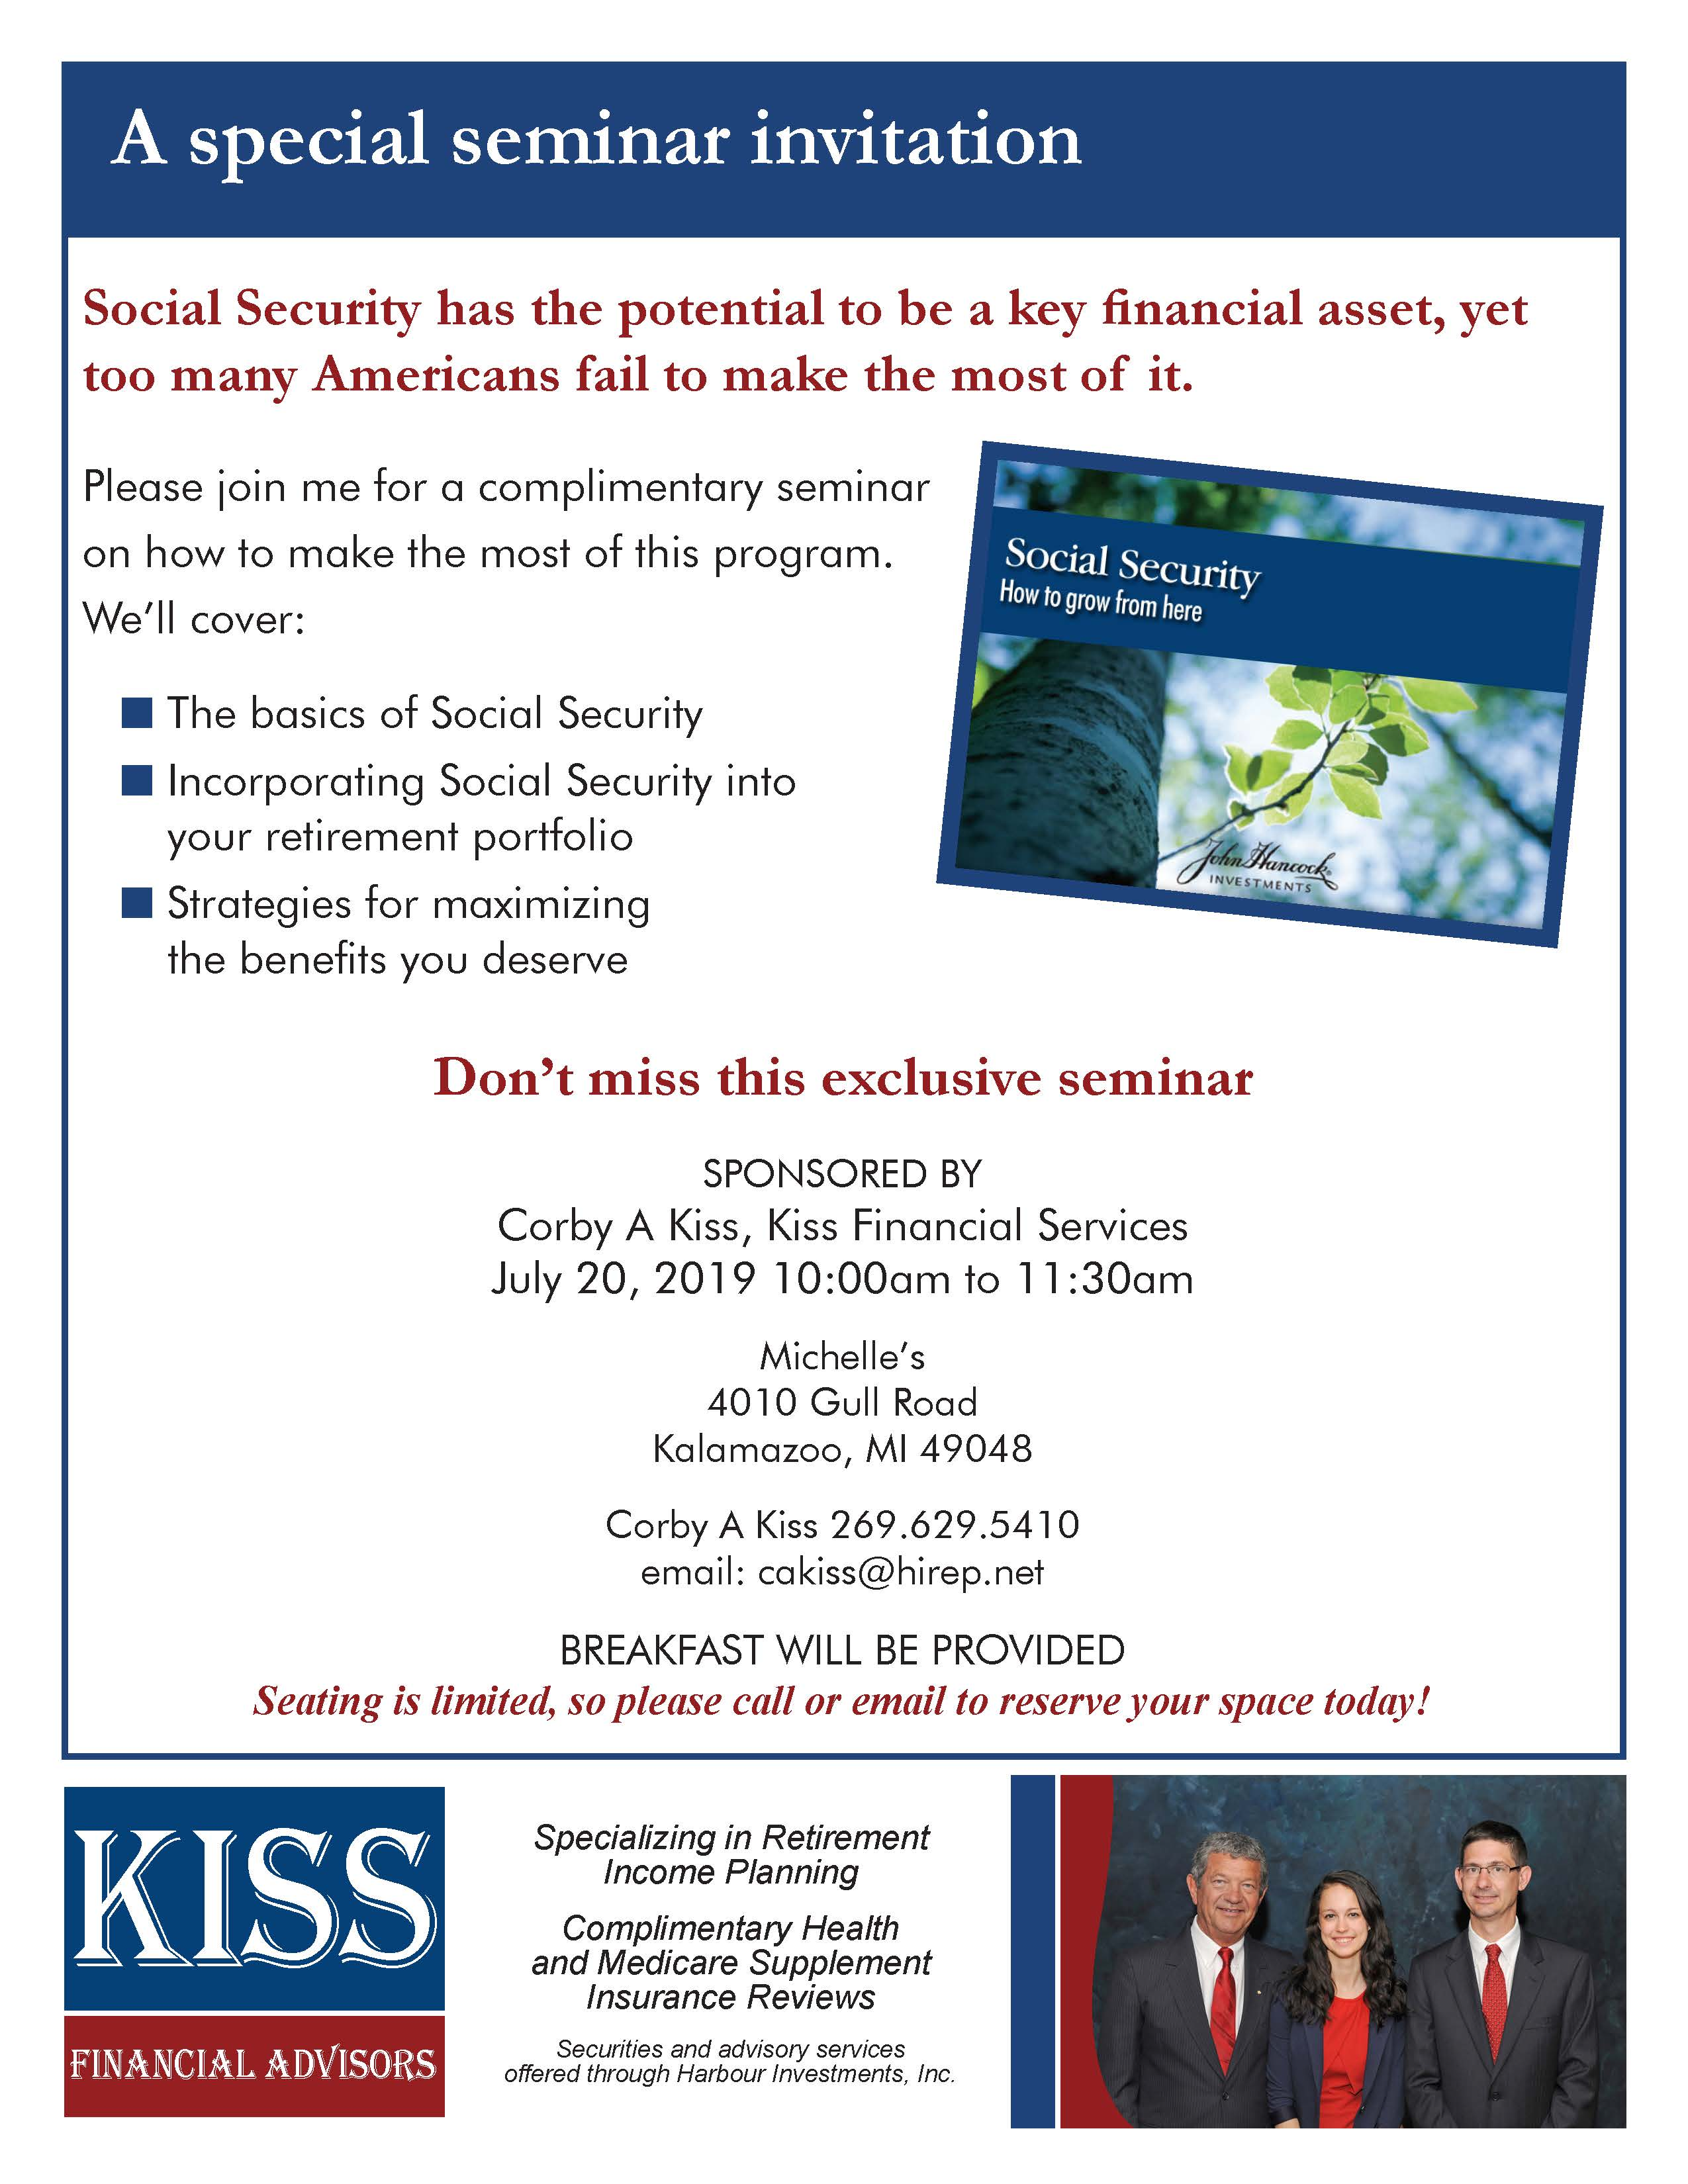 Events - KISS Financial Advisors